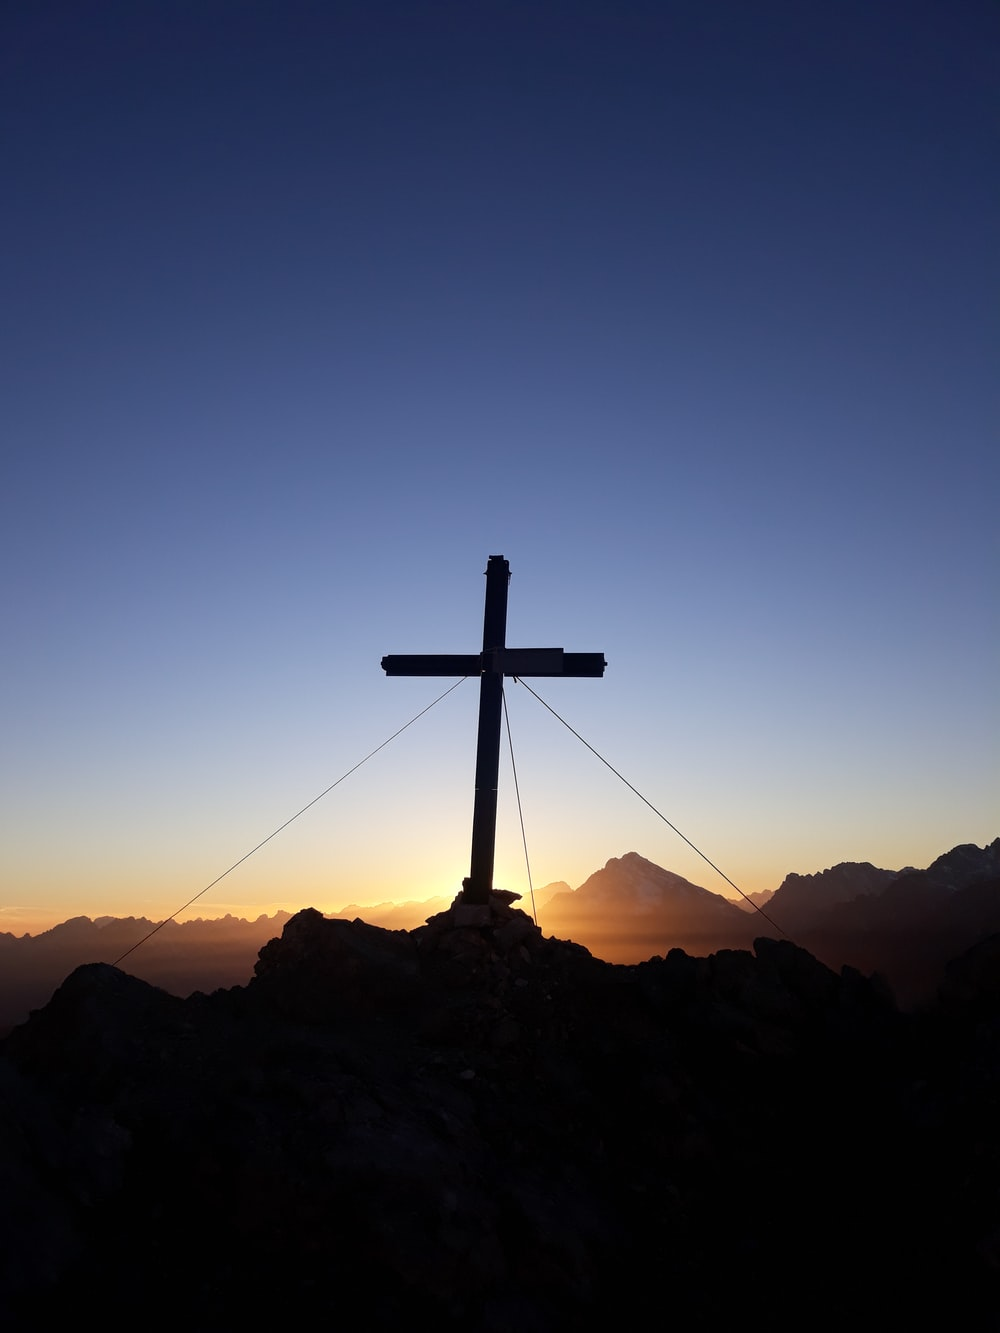 silhouette of cross on rock formation during sunset